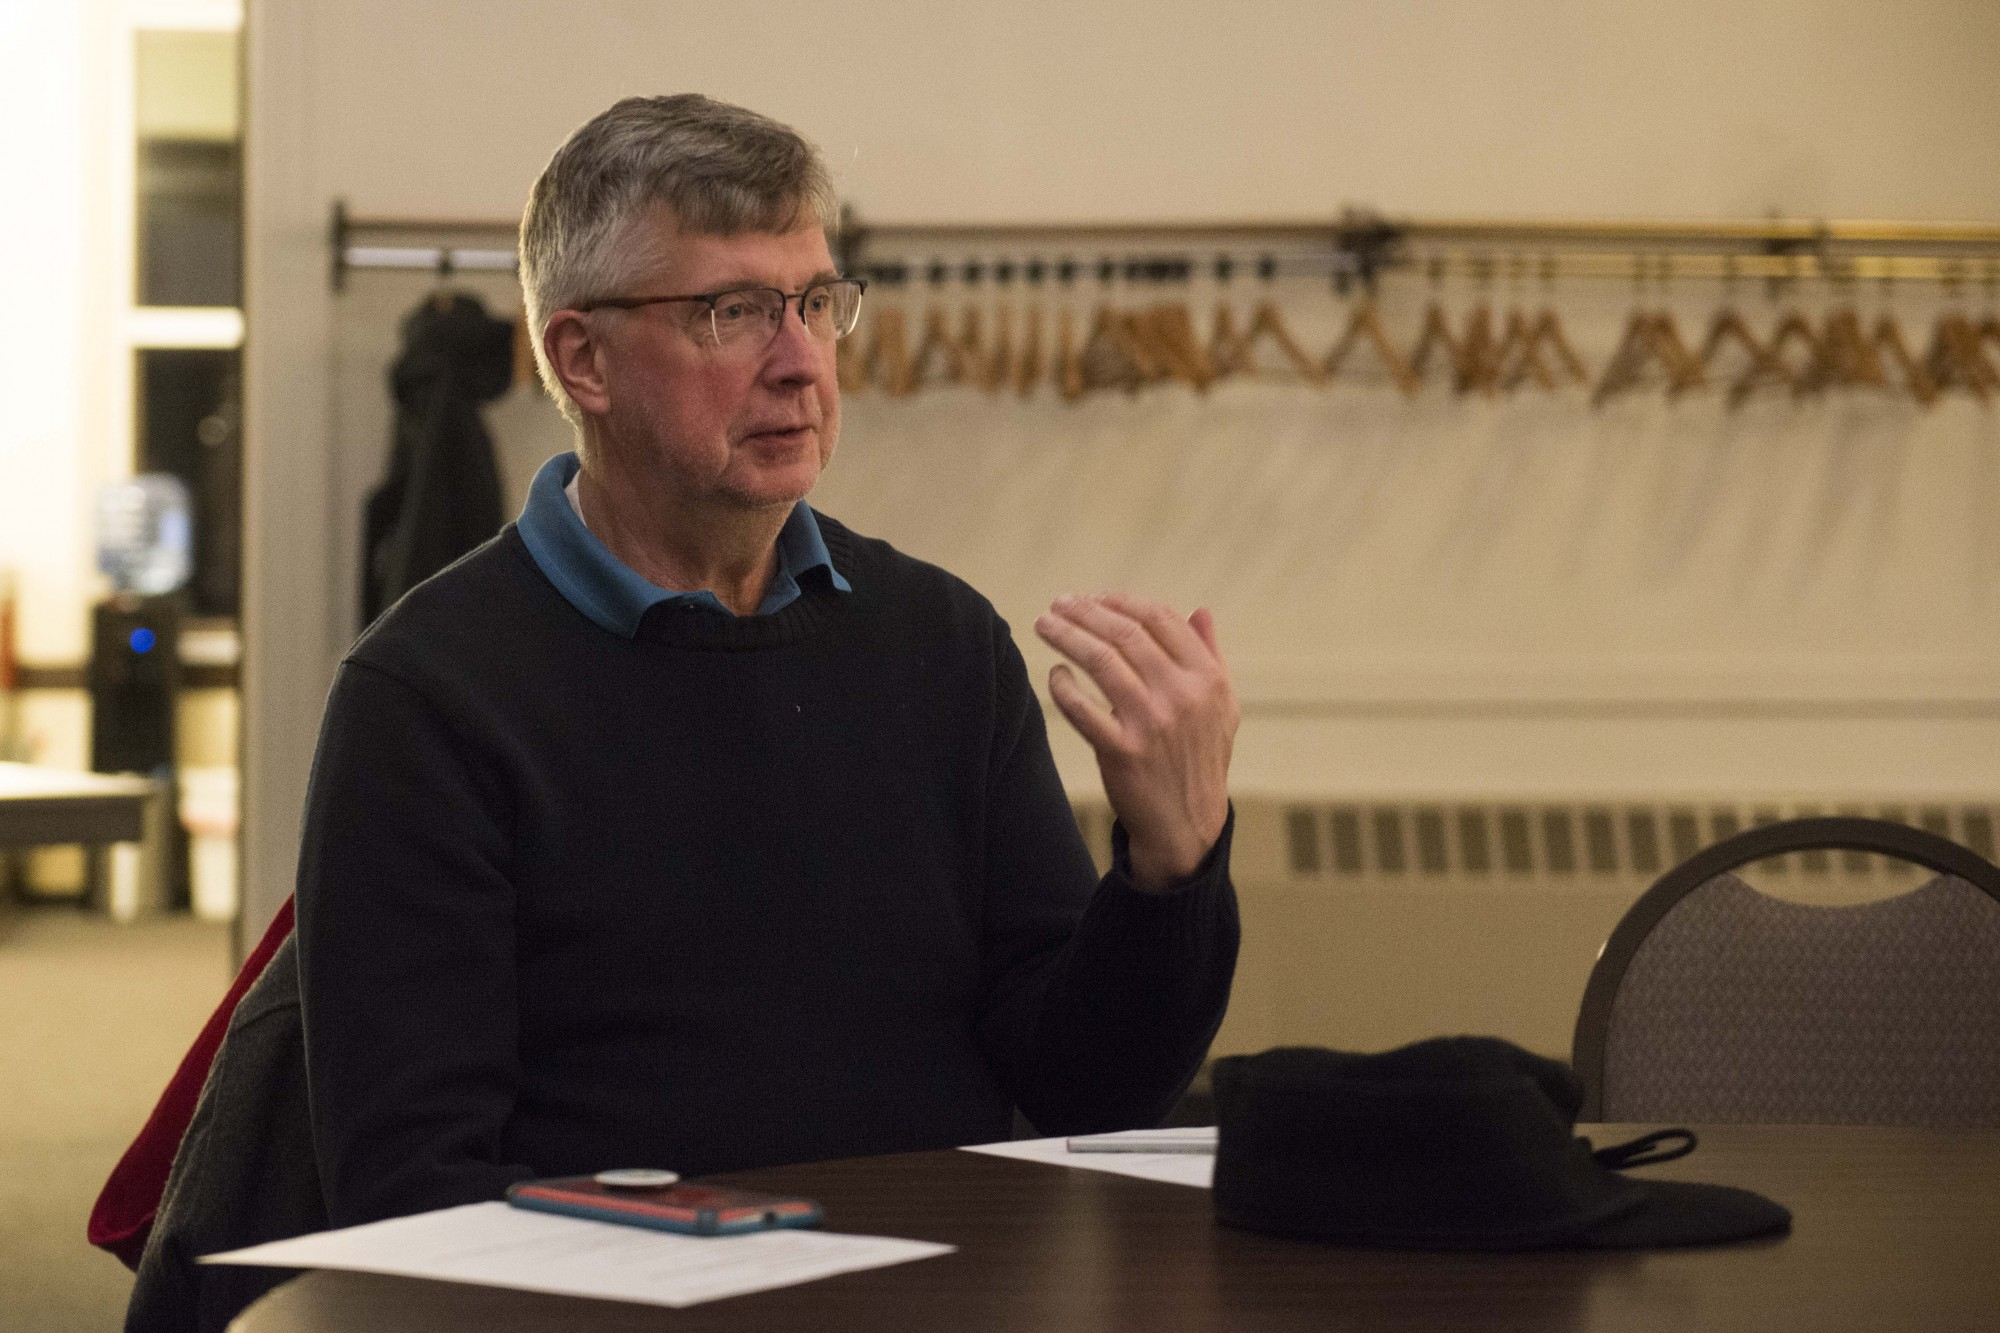 Vic Thorstenson, president of the Marcy-Holmes Neighborhood Association, speaks at an inaugural safety committee meeting at First Congregational Church on Monday, Nov. 11.